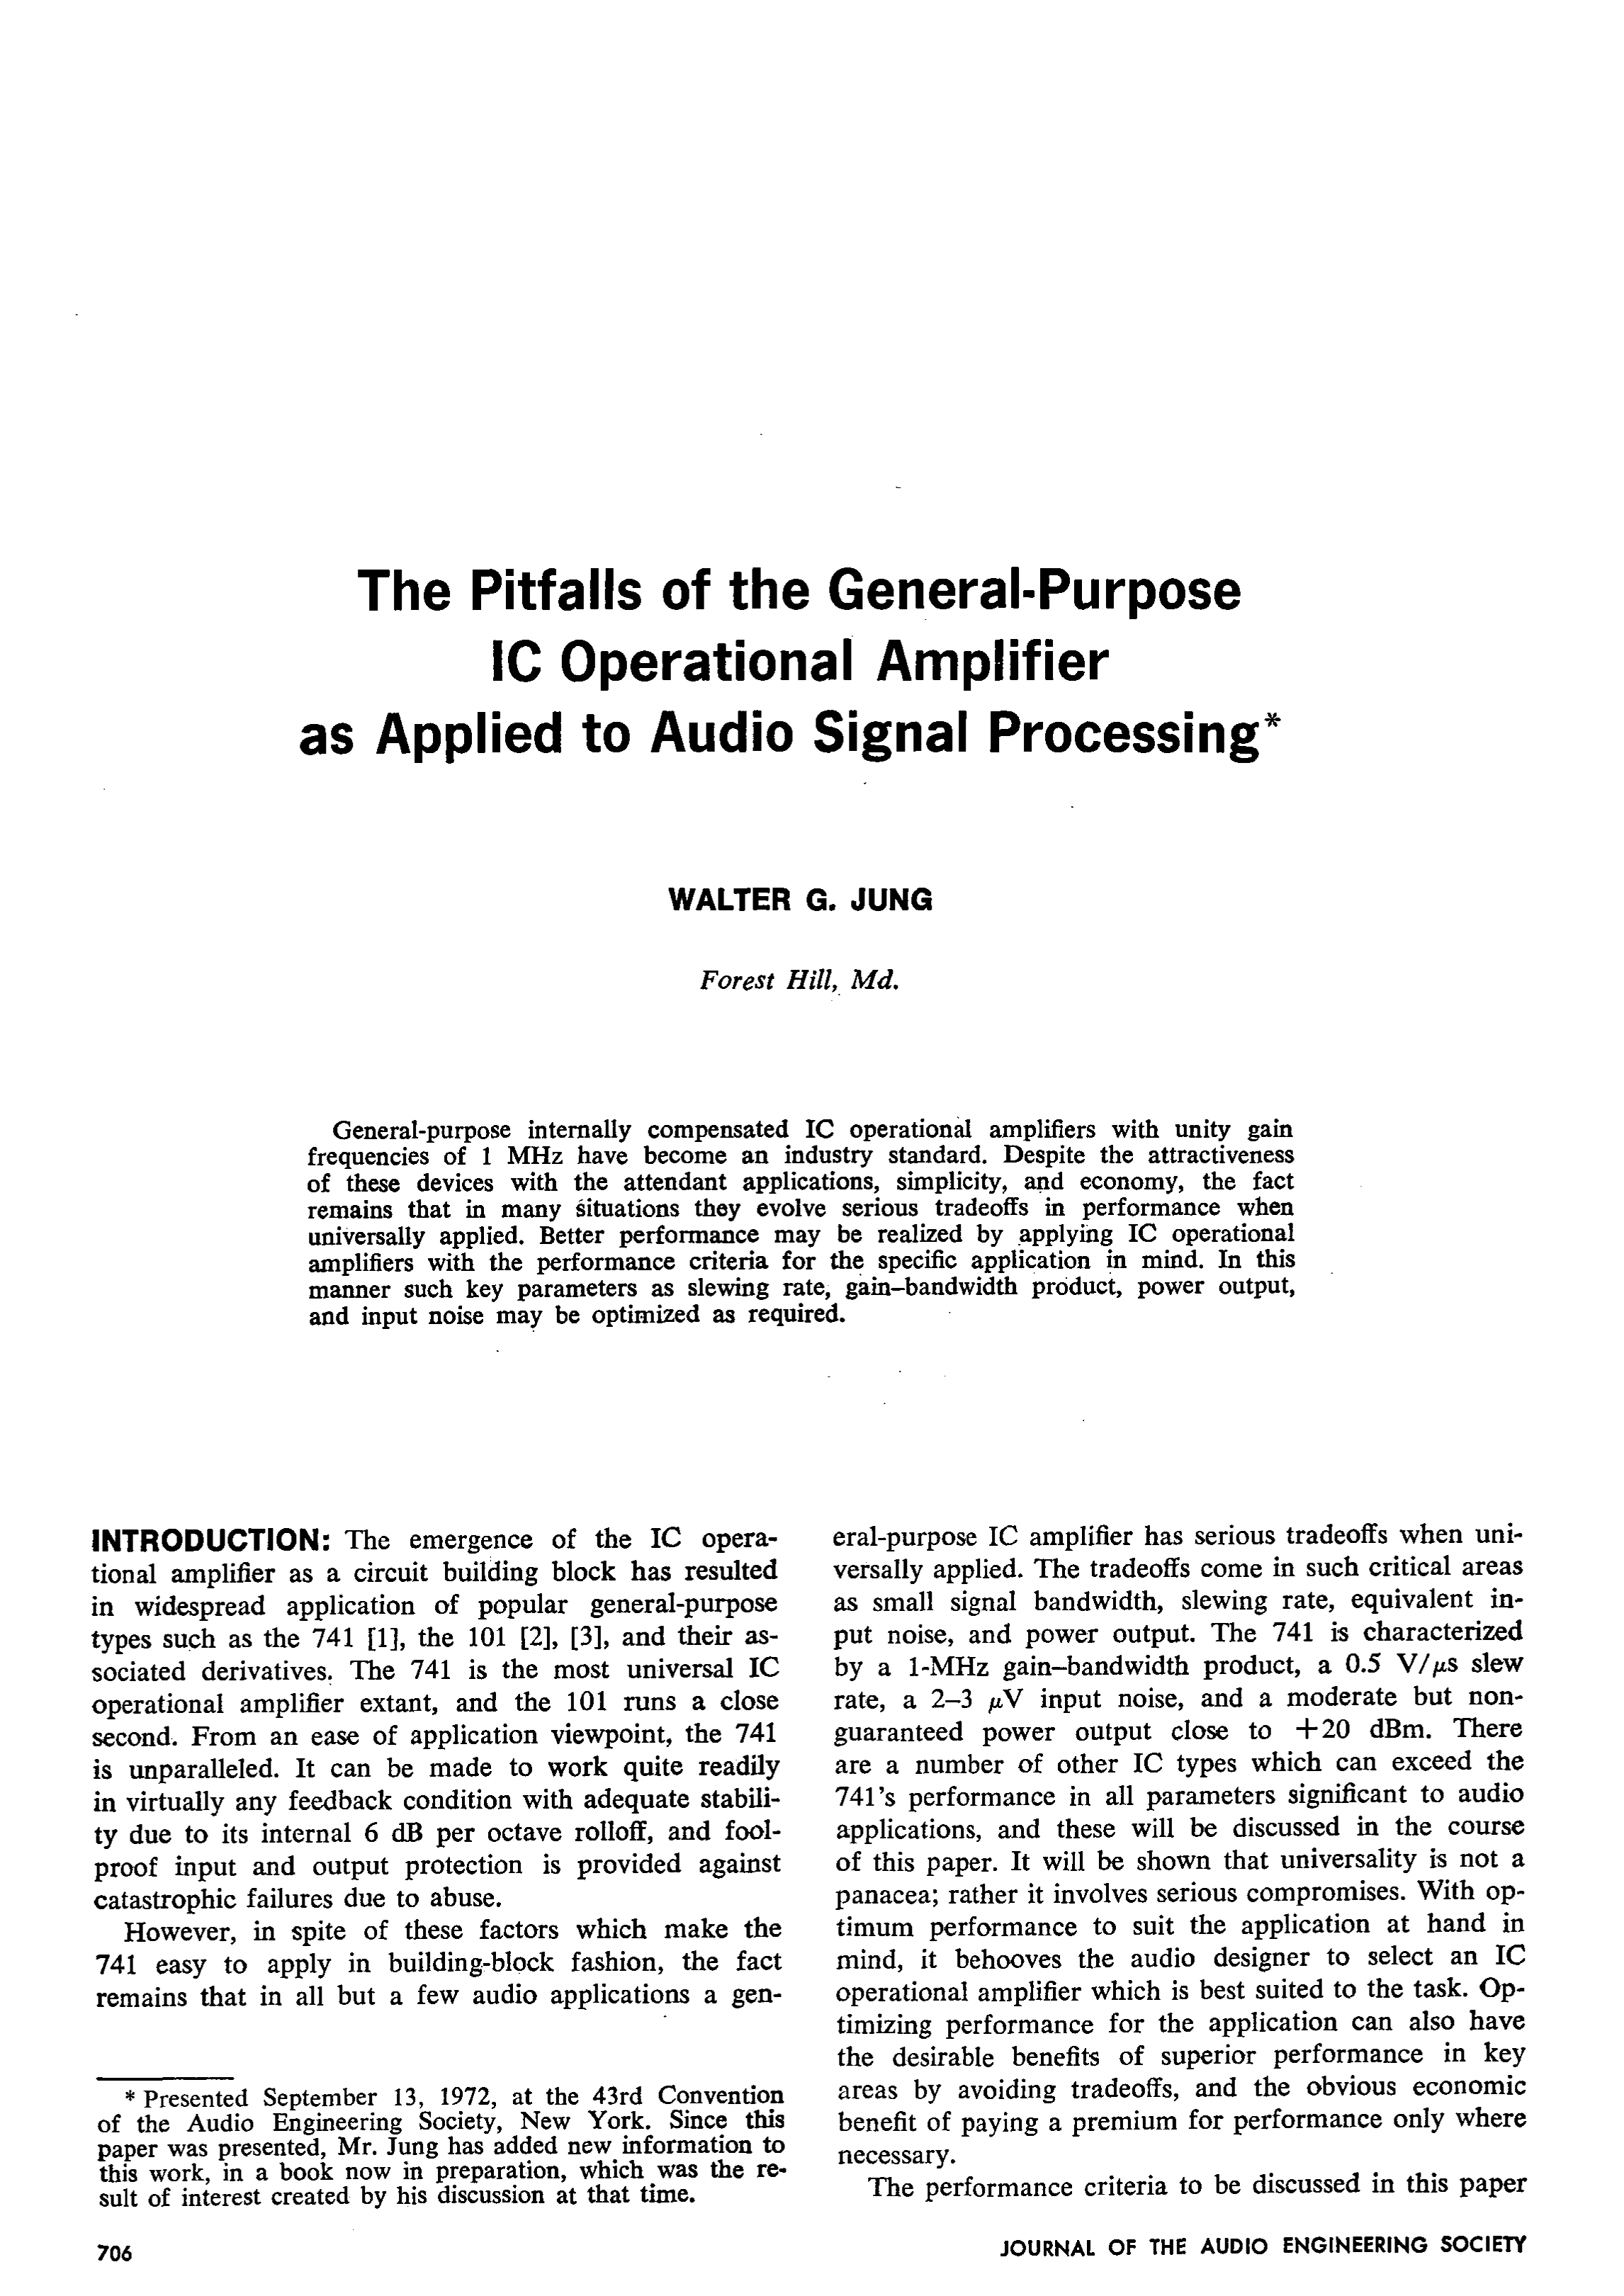 Aes E Library The Pitfalls Of General Purpose Ic Operational Audio Line High End Preamplifier With Ics Amplifier As Applied To Signal Processing